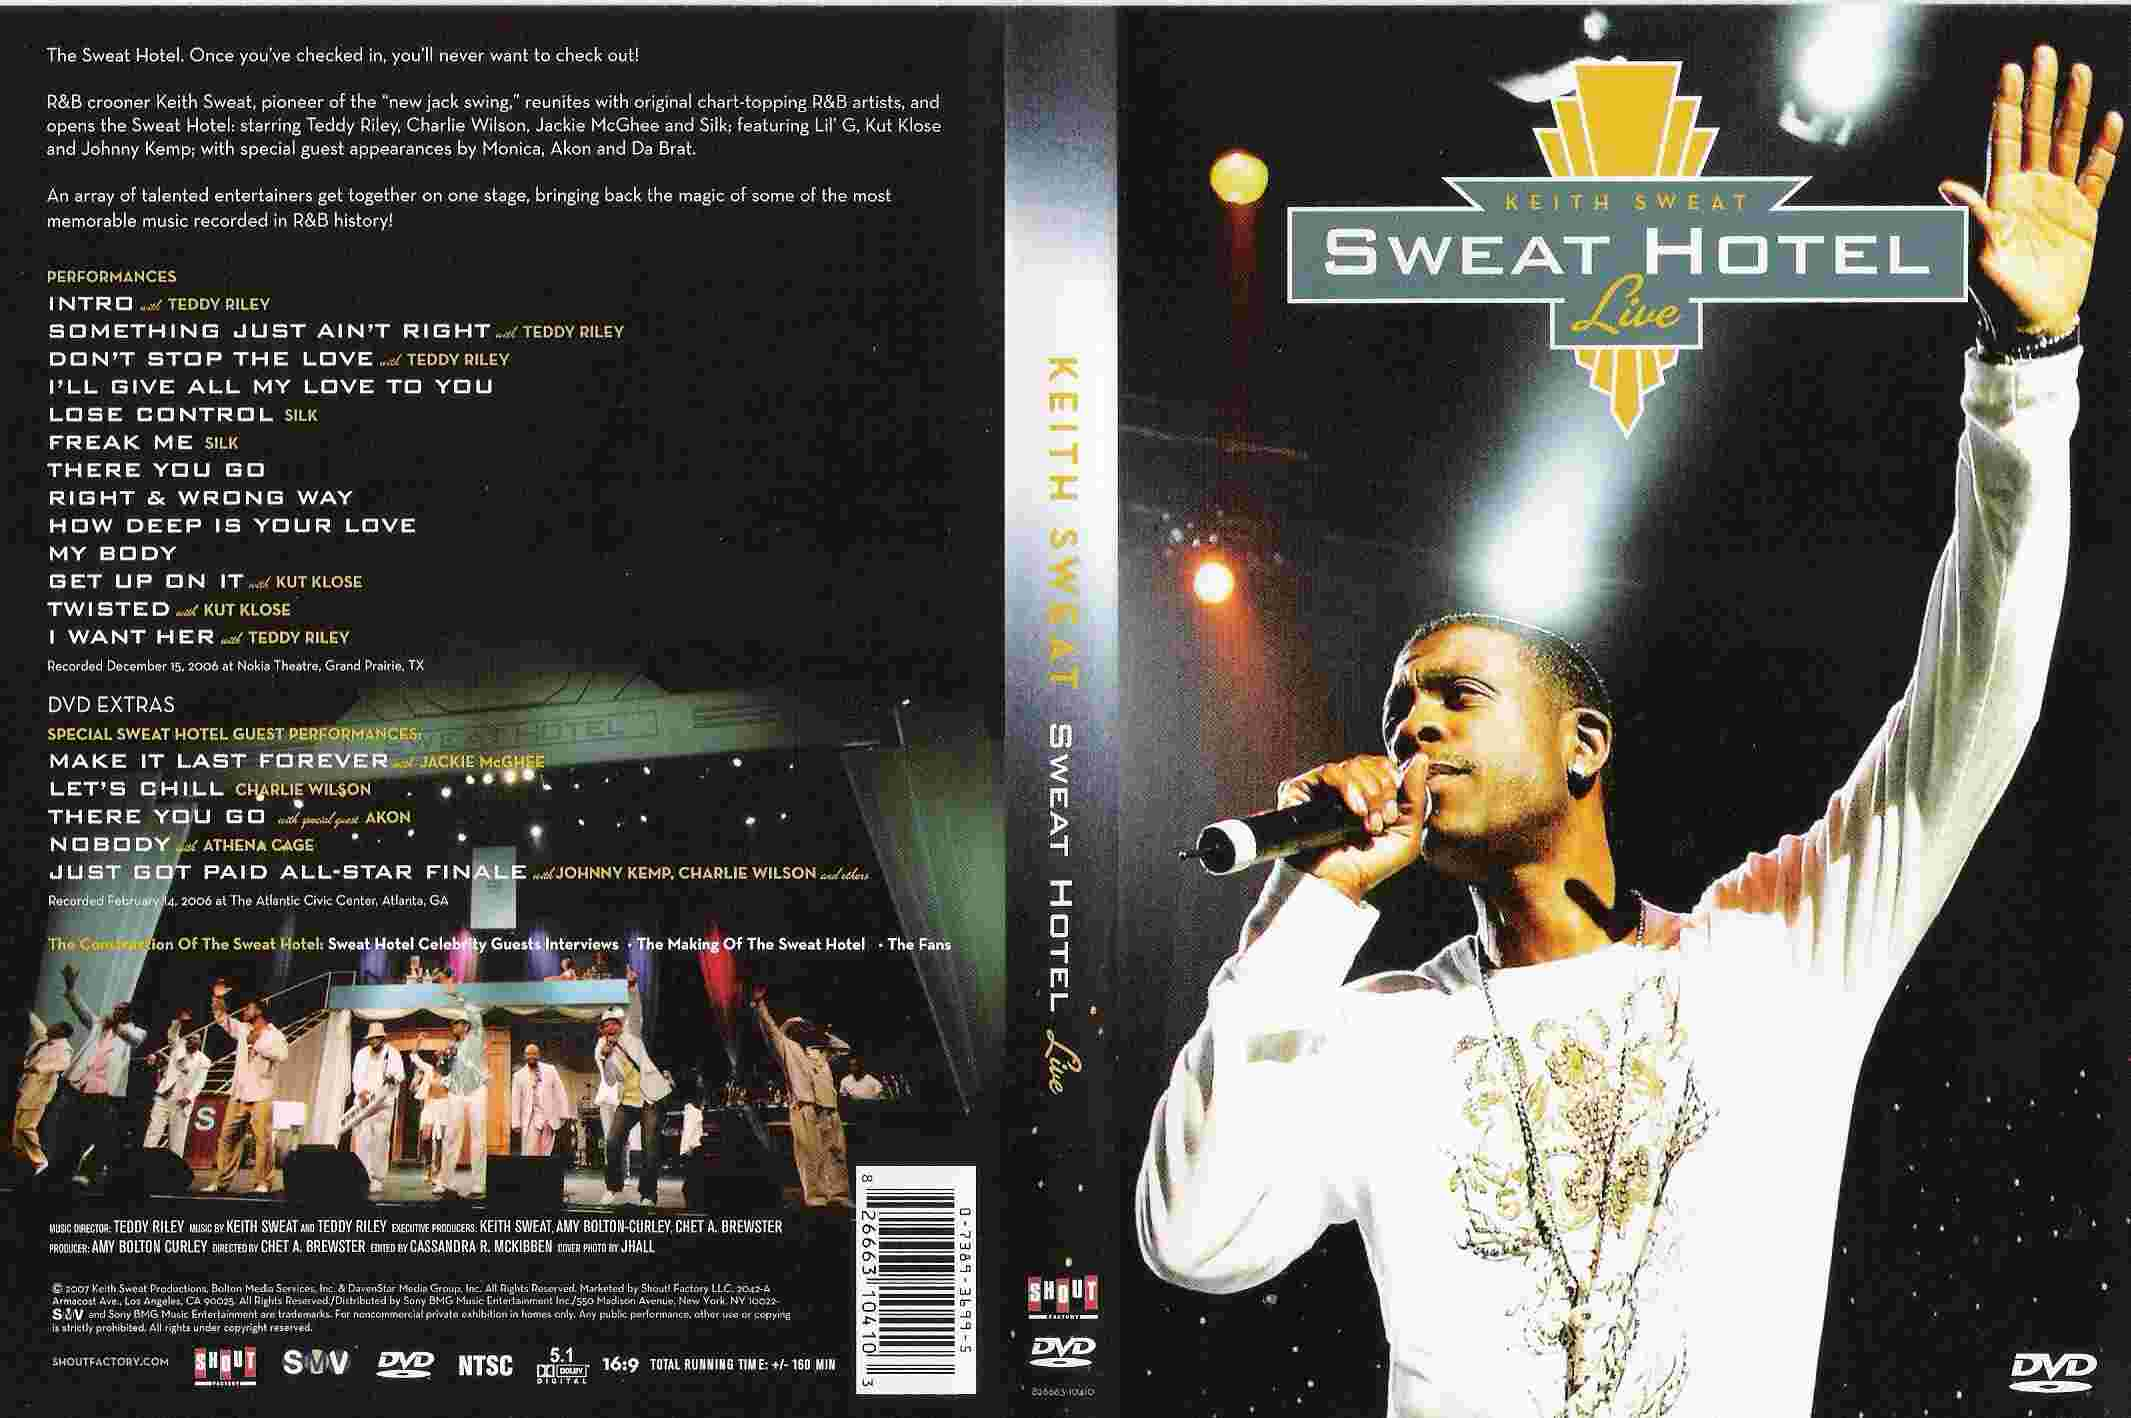 Keith Sweat - Sweat Hotel Live R1 - Front